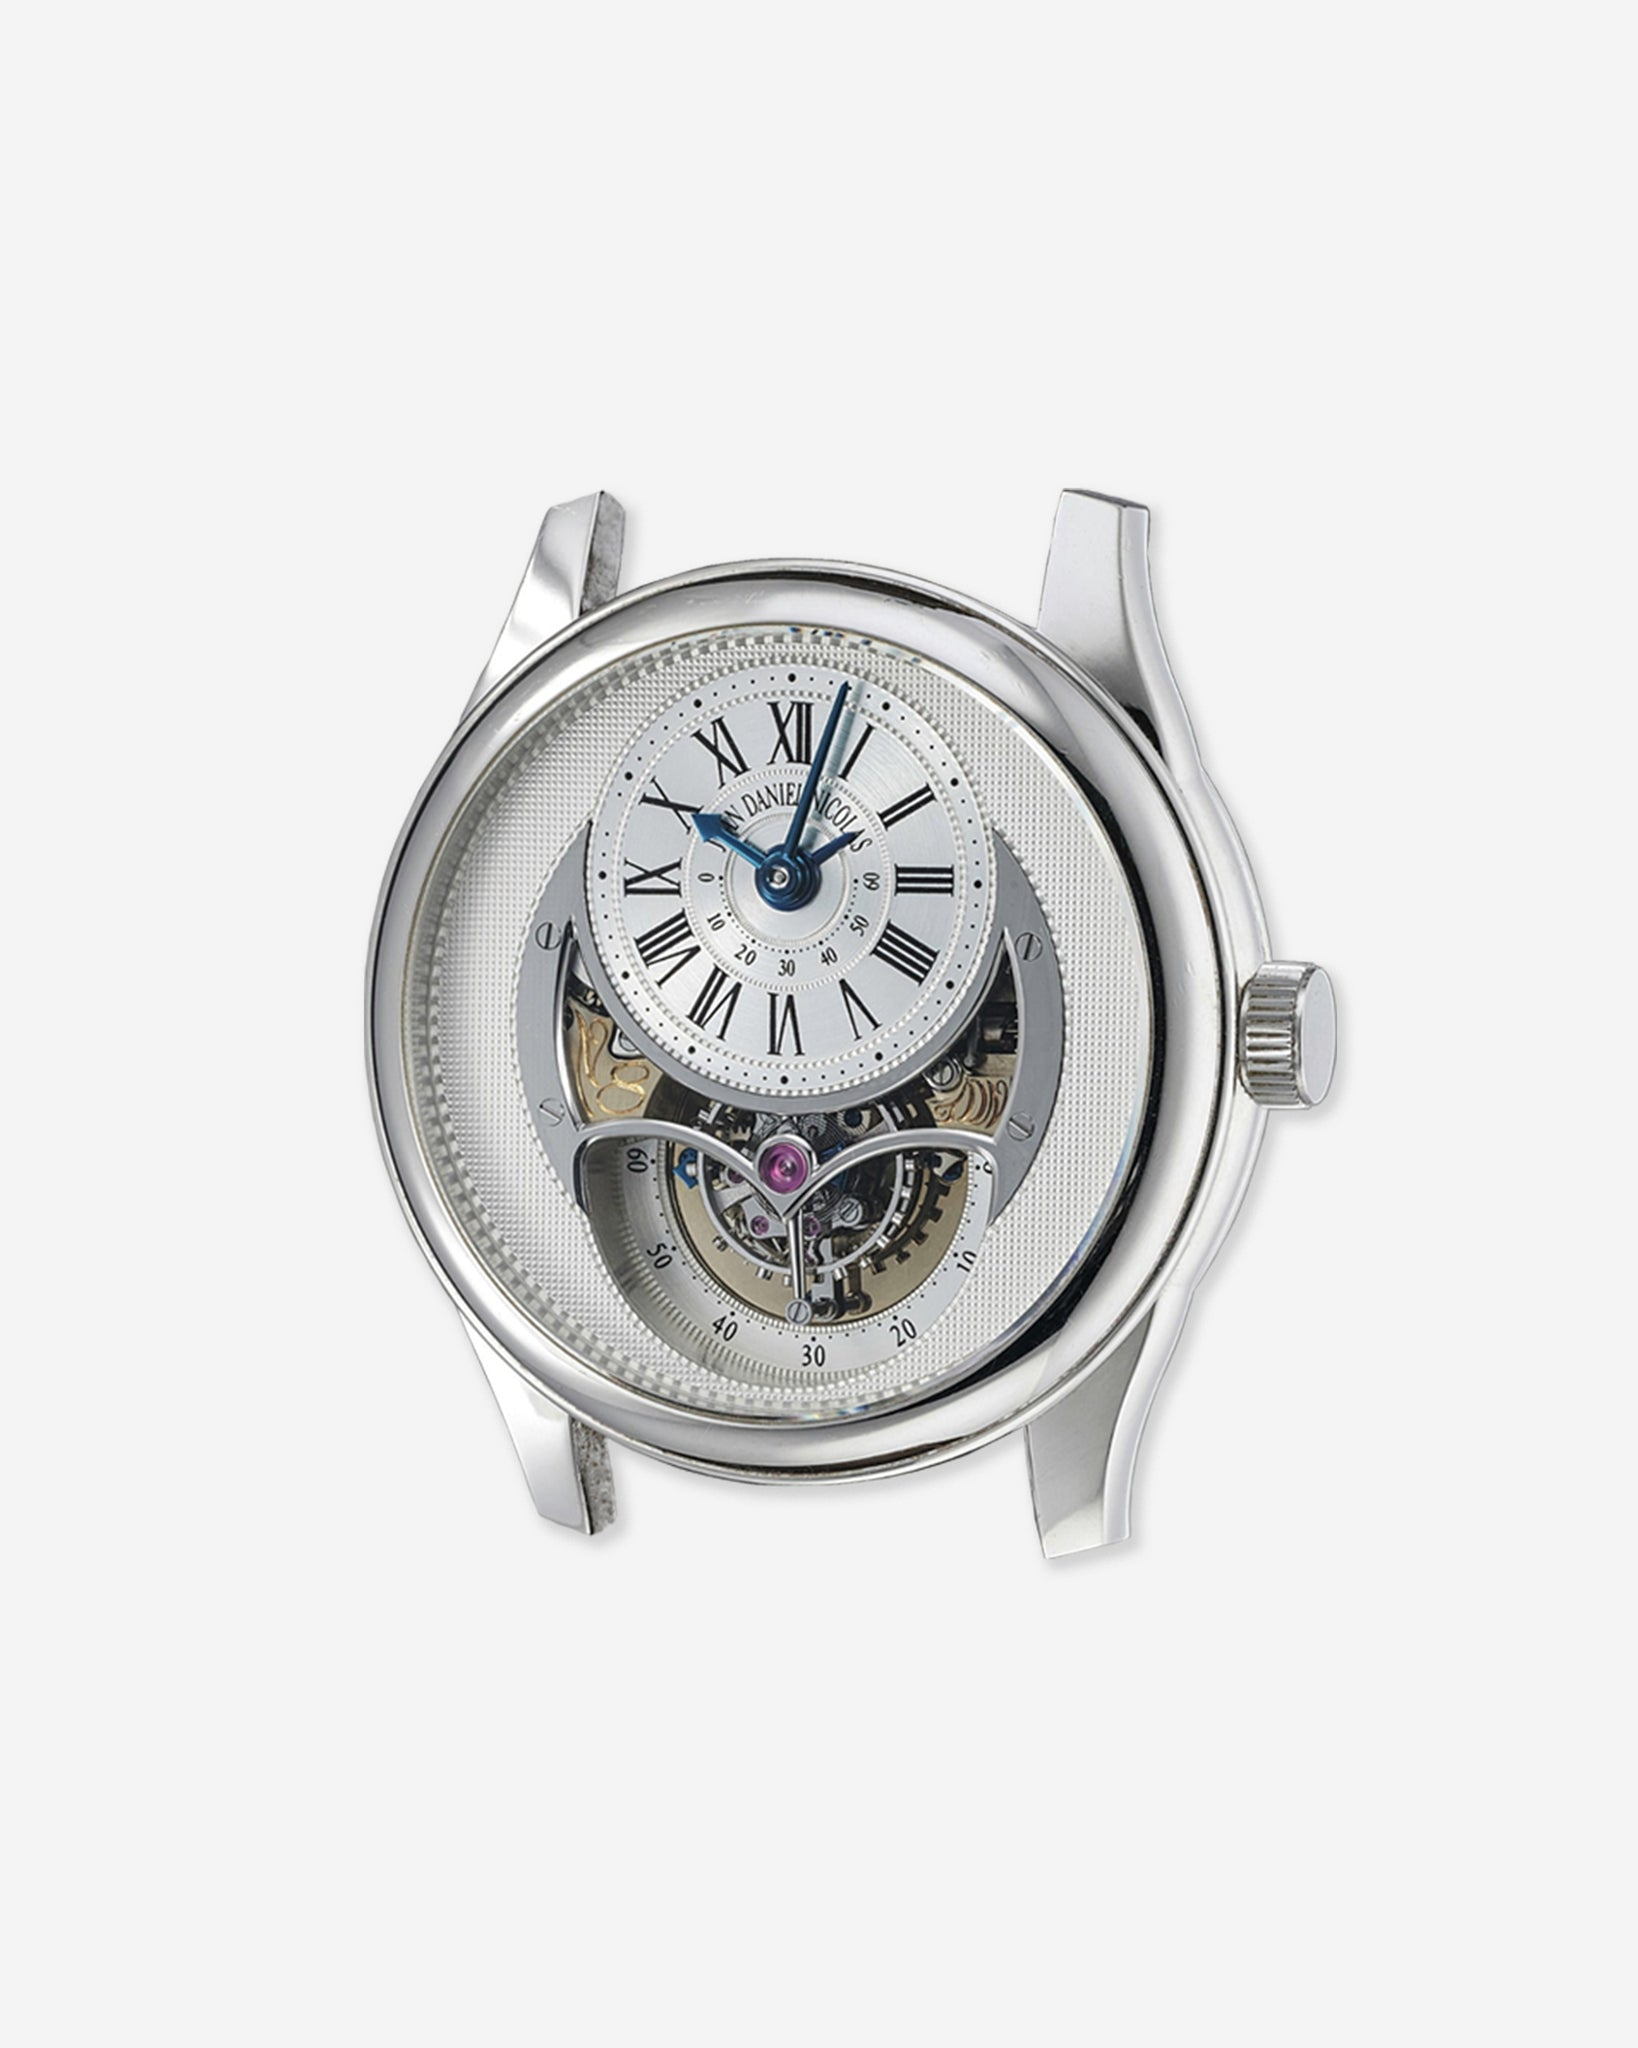 Jean Daniel Nicolas two minute tourbillon